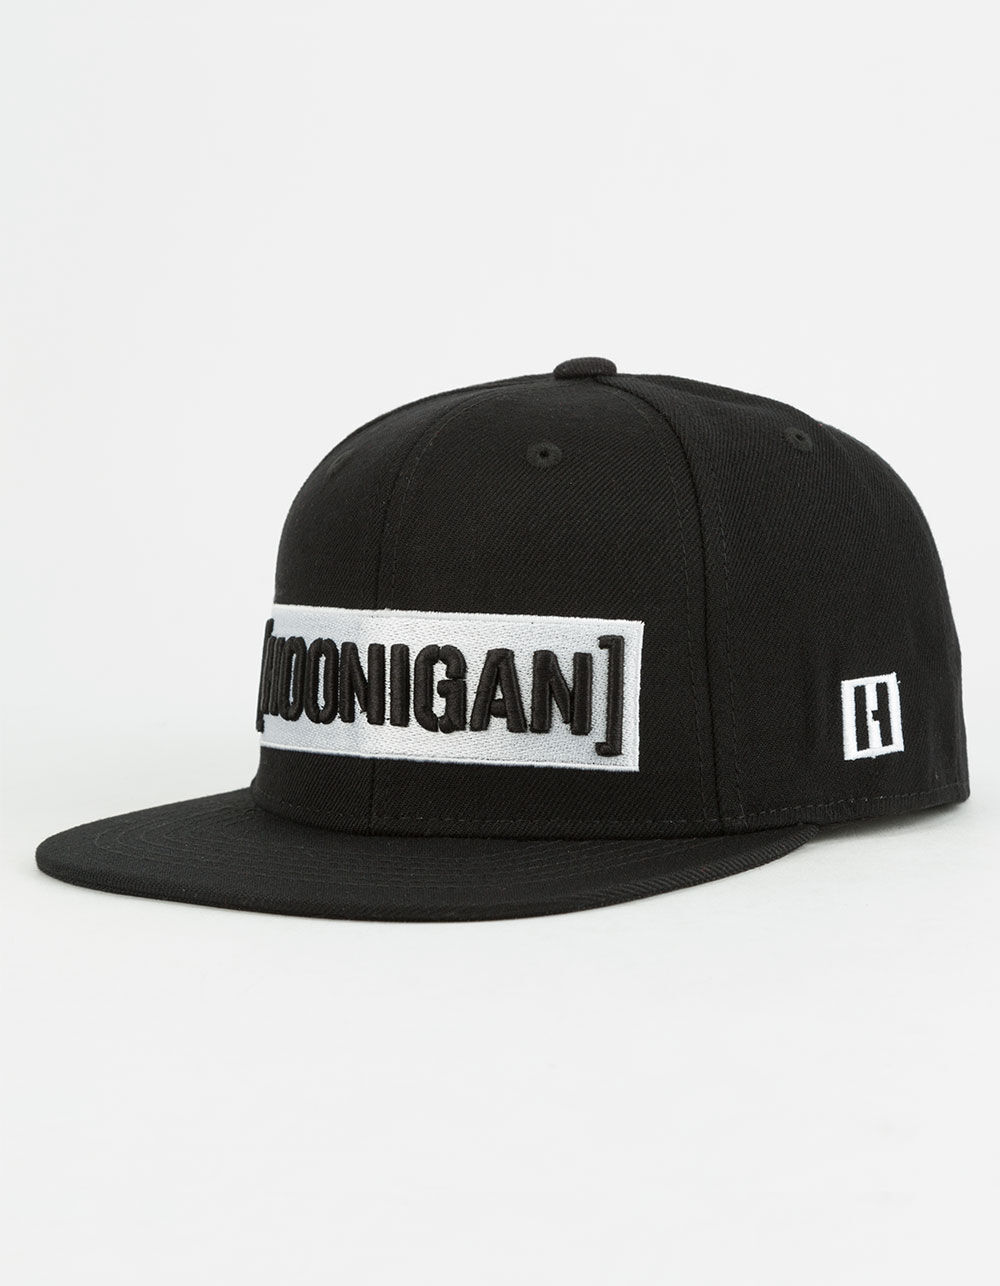 HOONIGAN Censor Bar Black Snapback Hat